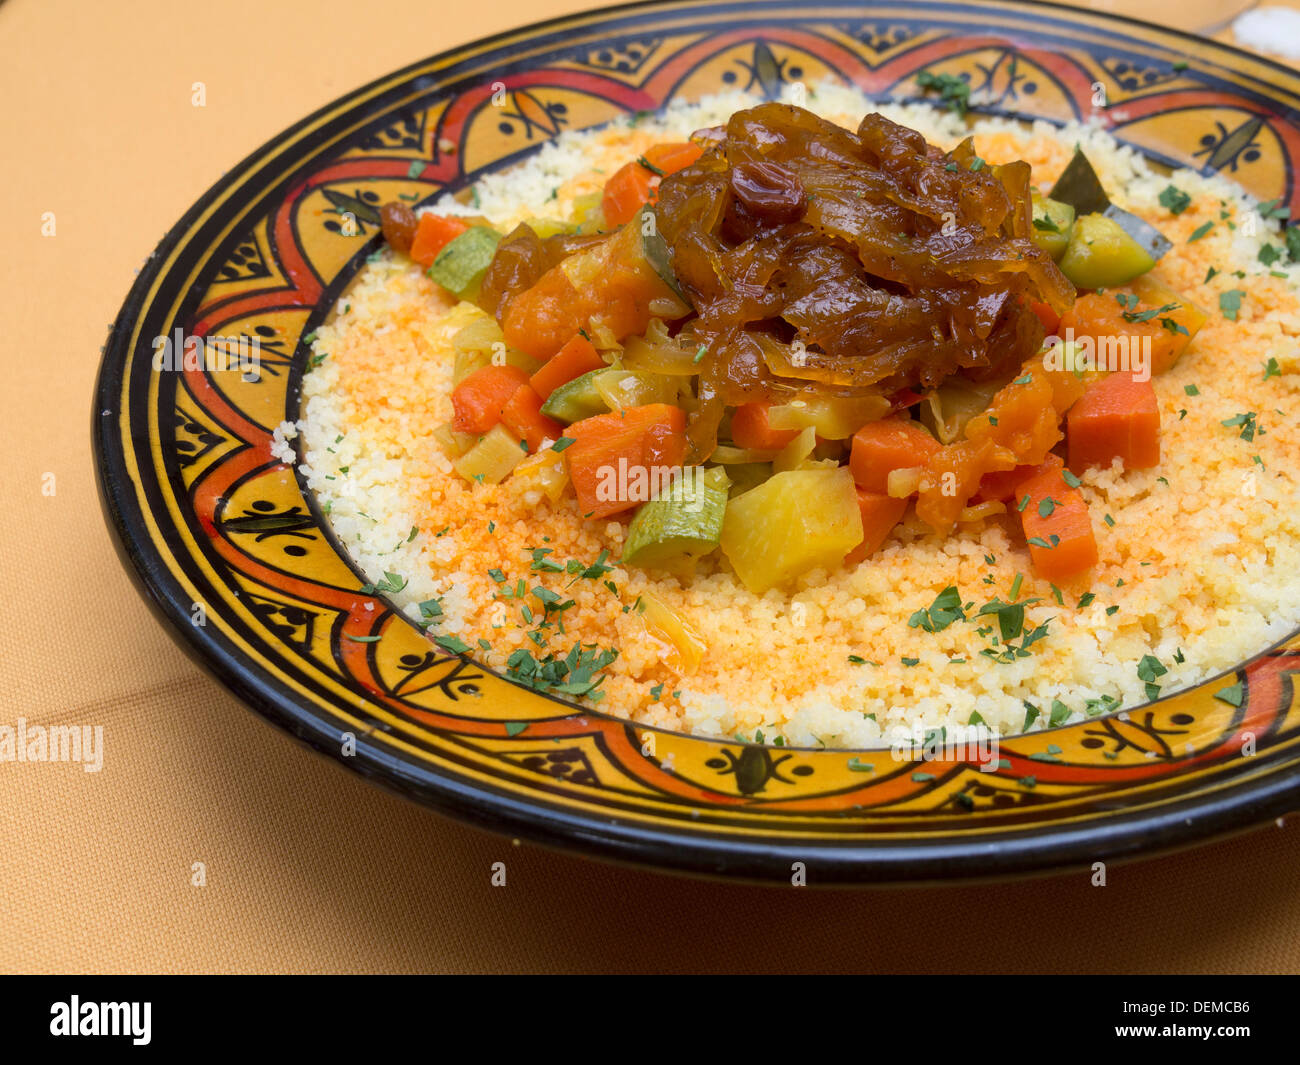 Moroccan food couscous stock photo royalty free image for About moroccan cuisine